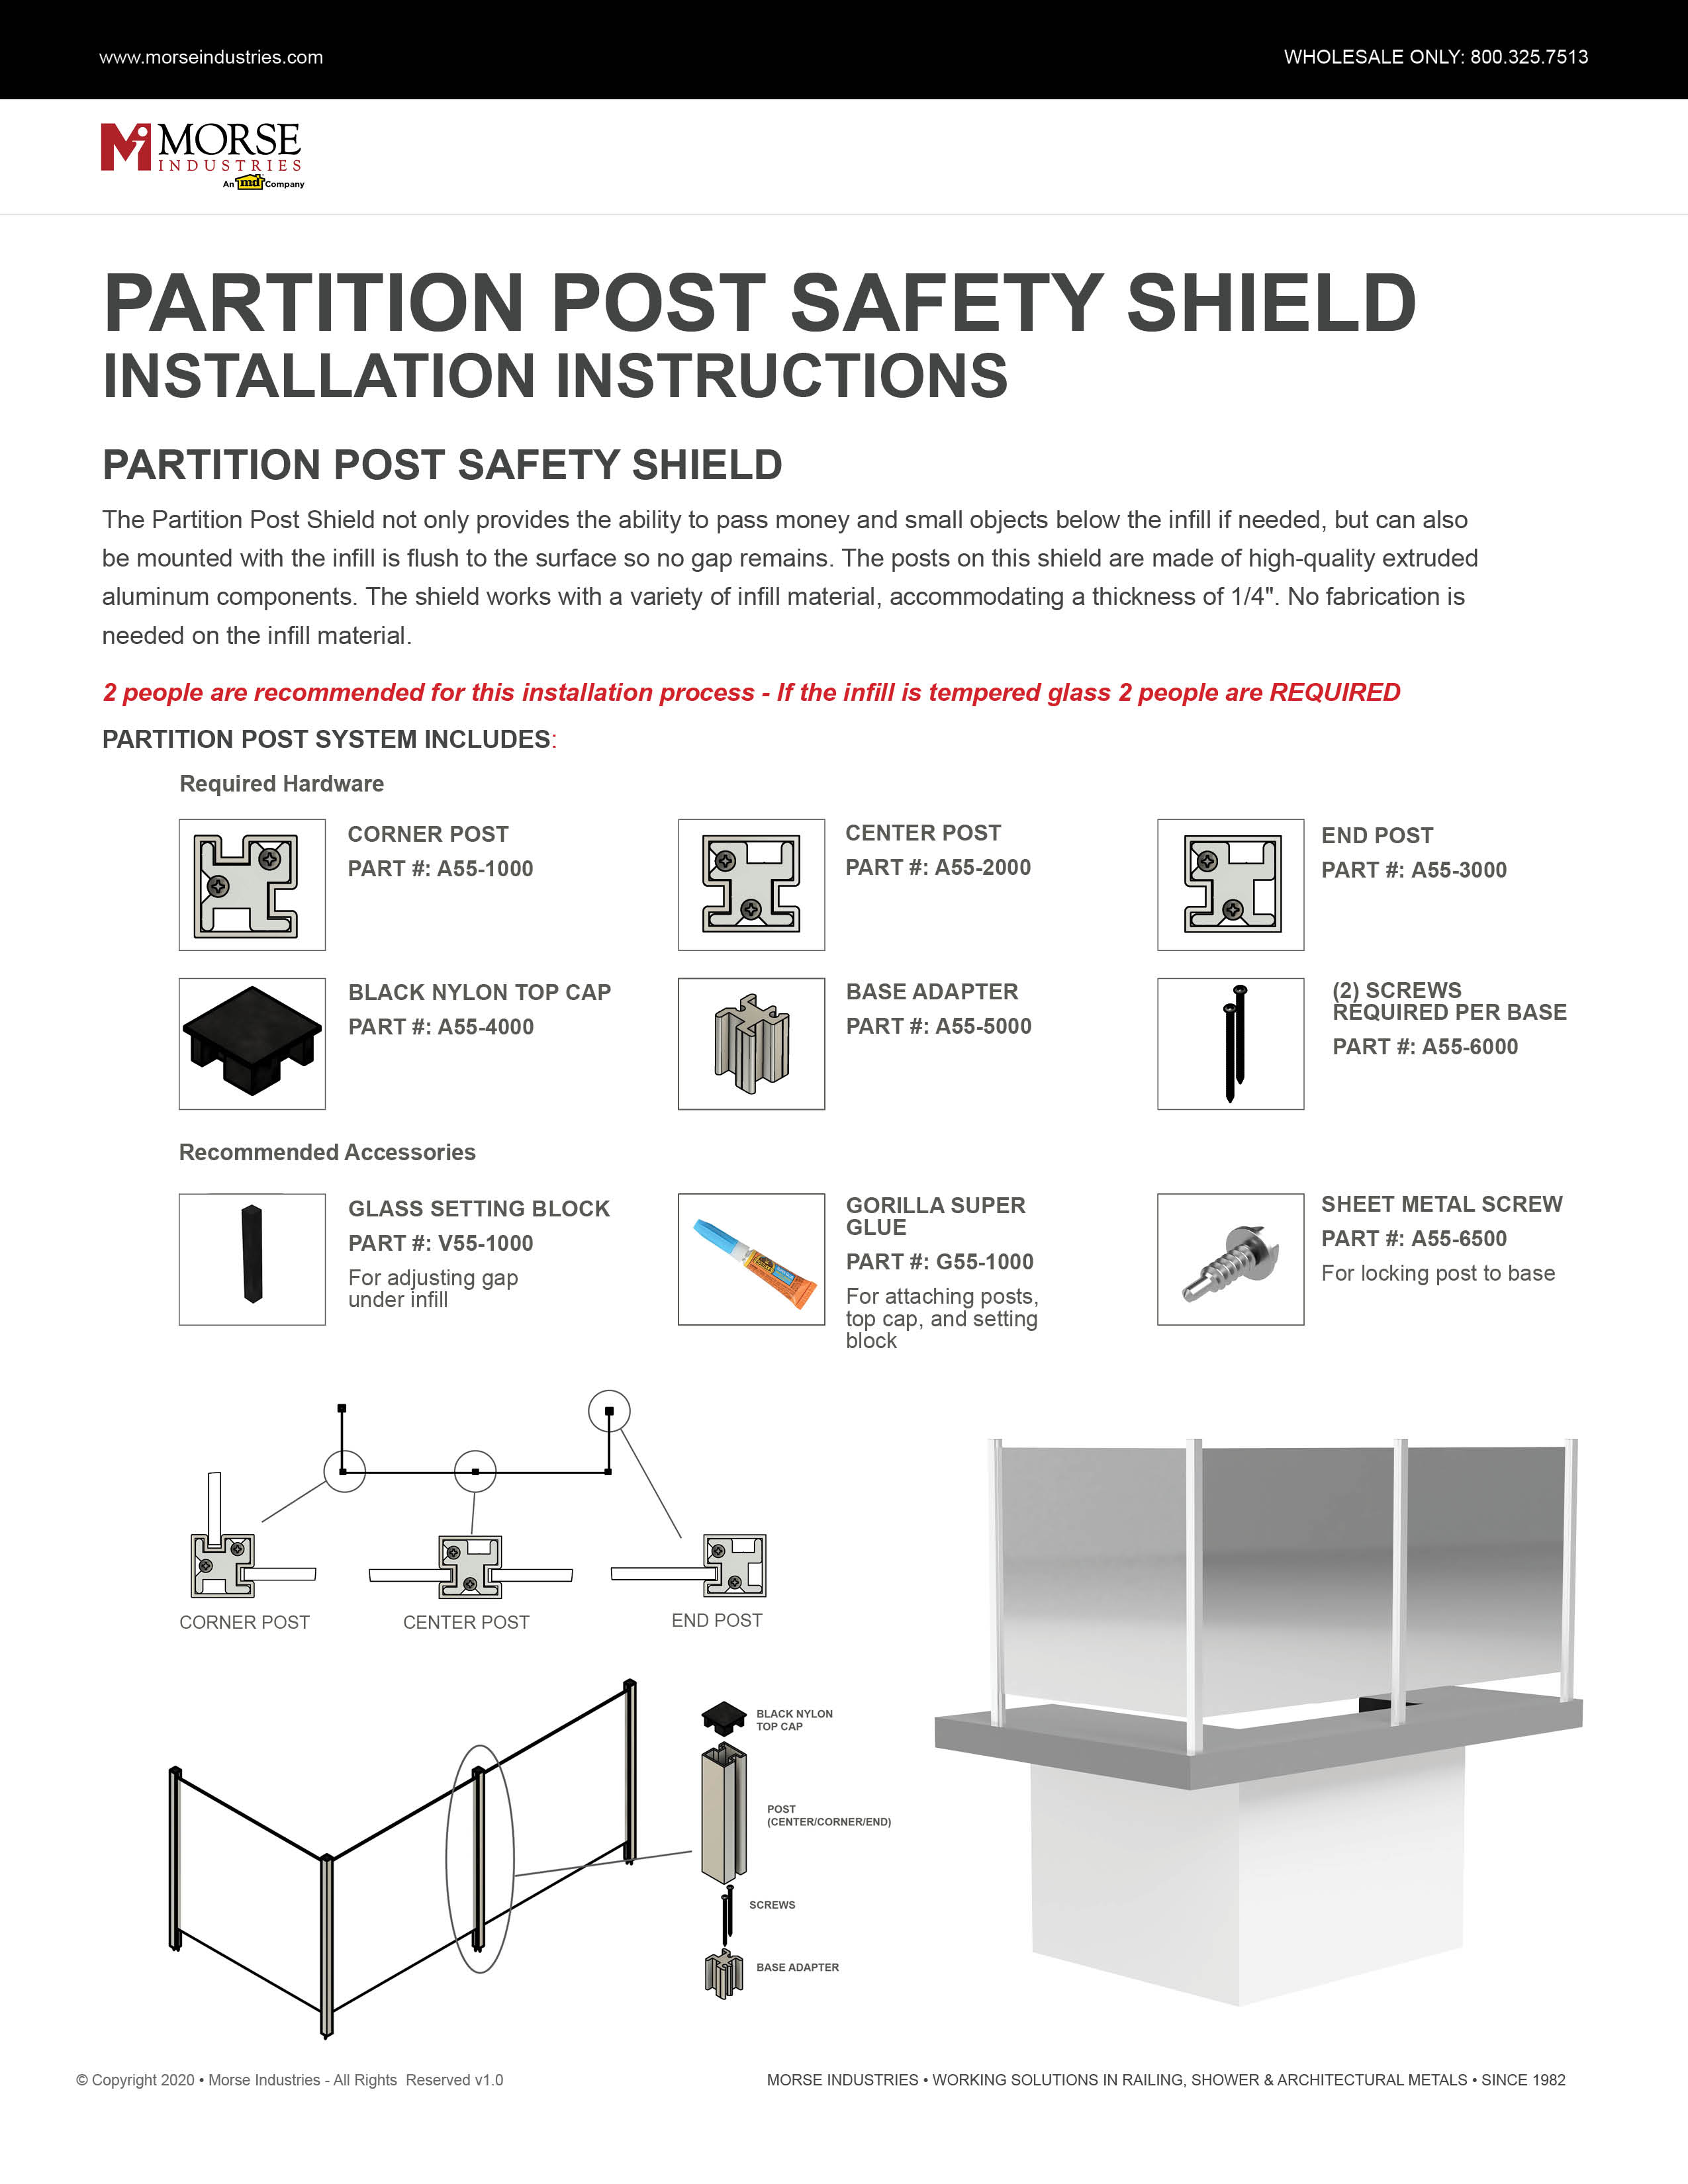 Partition Post Safety Shield Installation Instructions